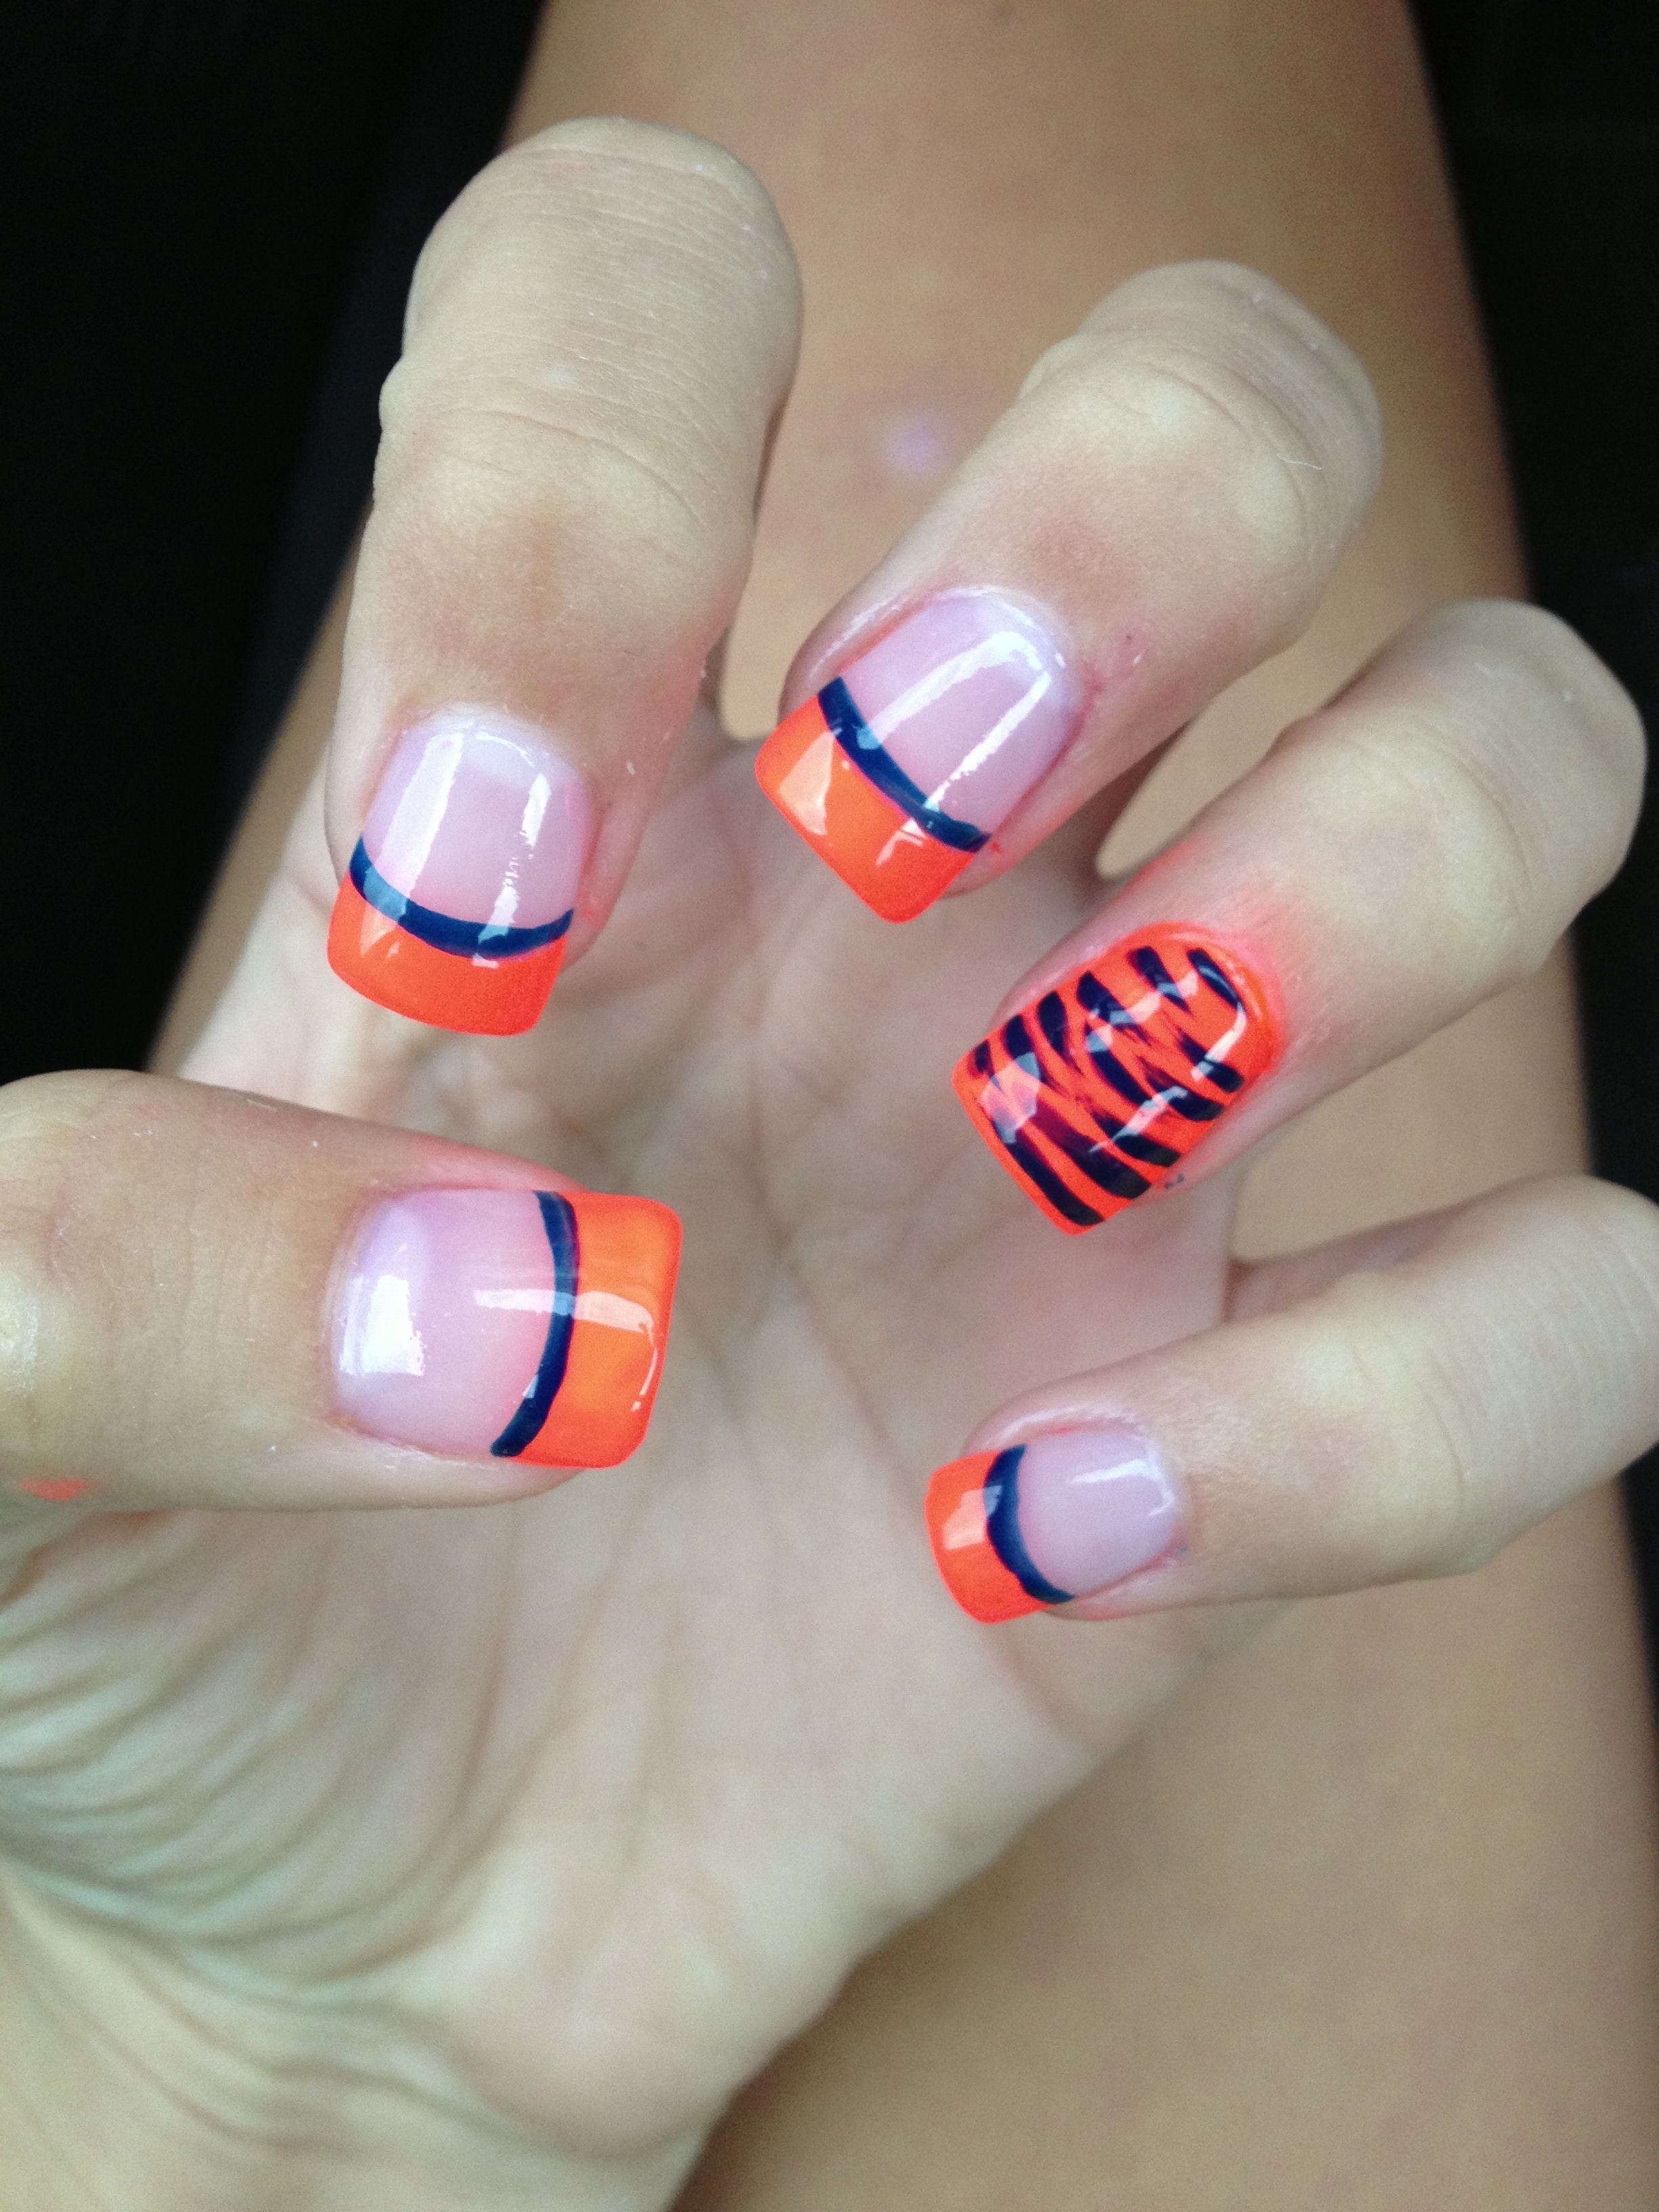 Orange tip with blue stripes with orange accent nails with tiger ...